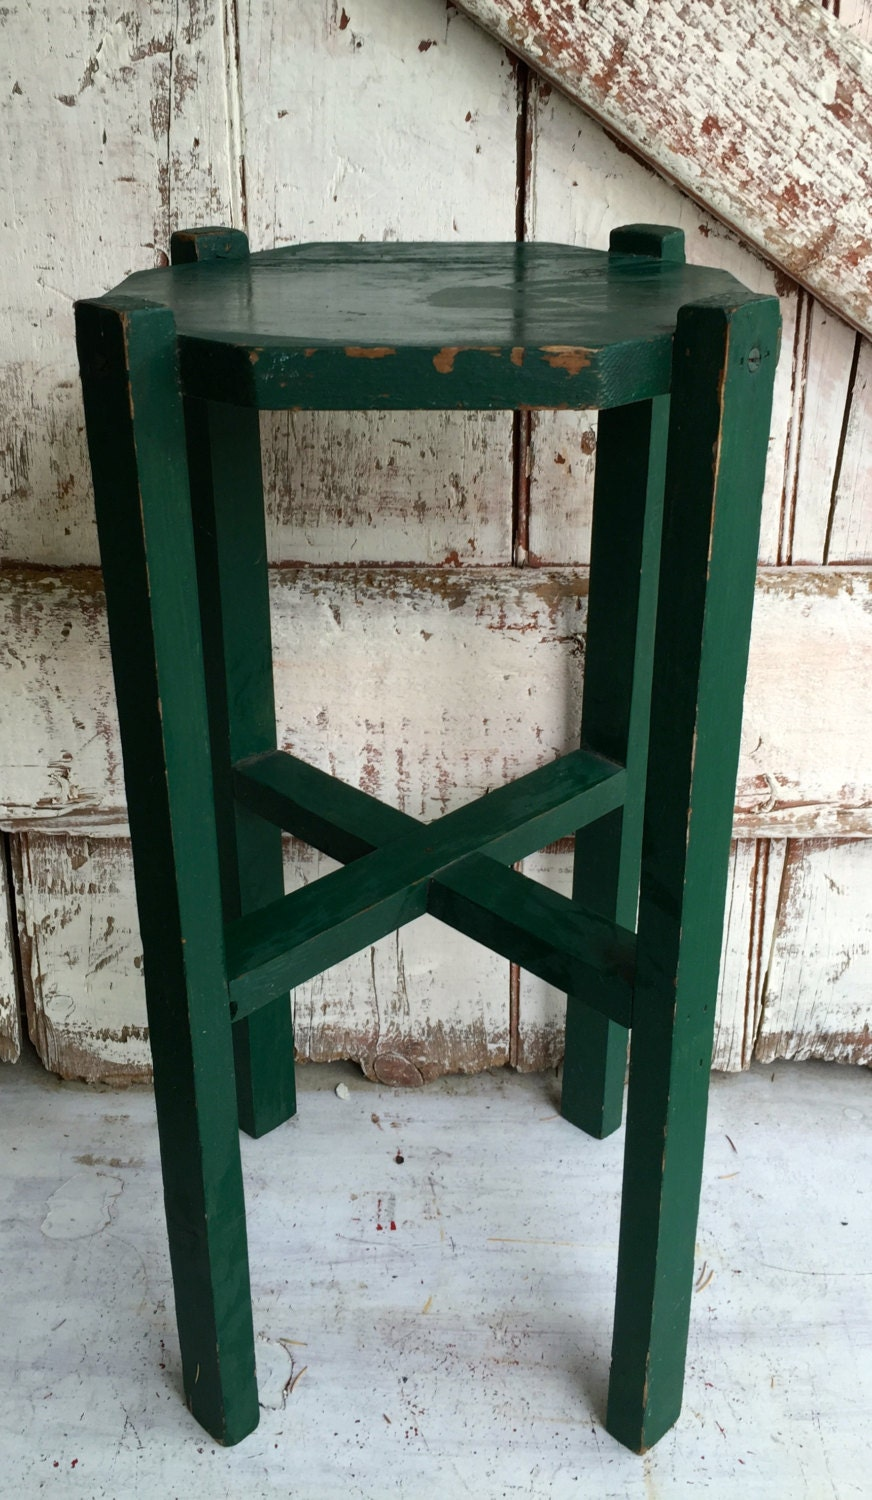 Antique green wooden plant stand small parlor table wood side